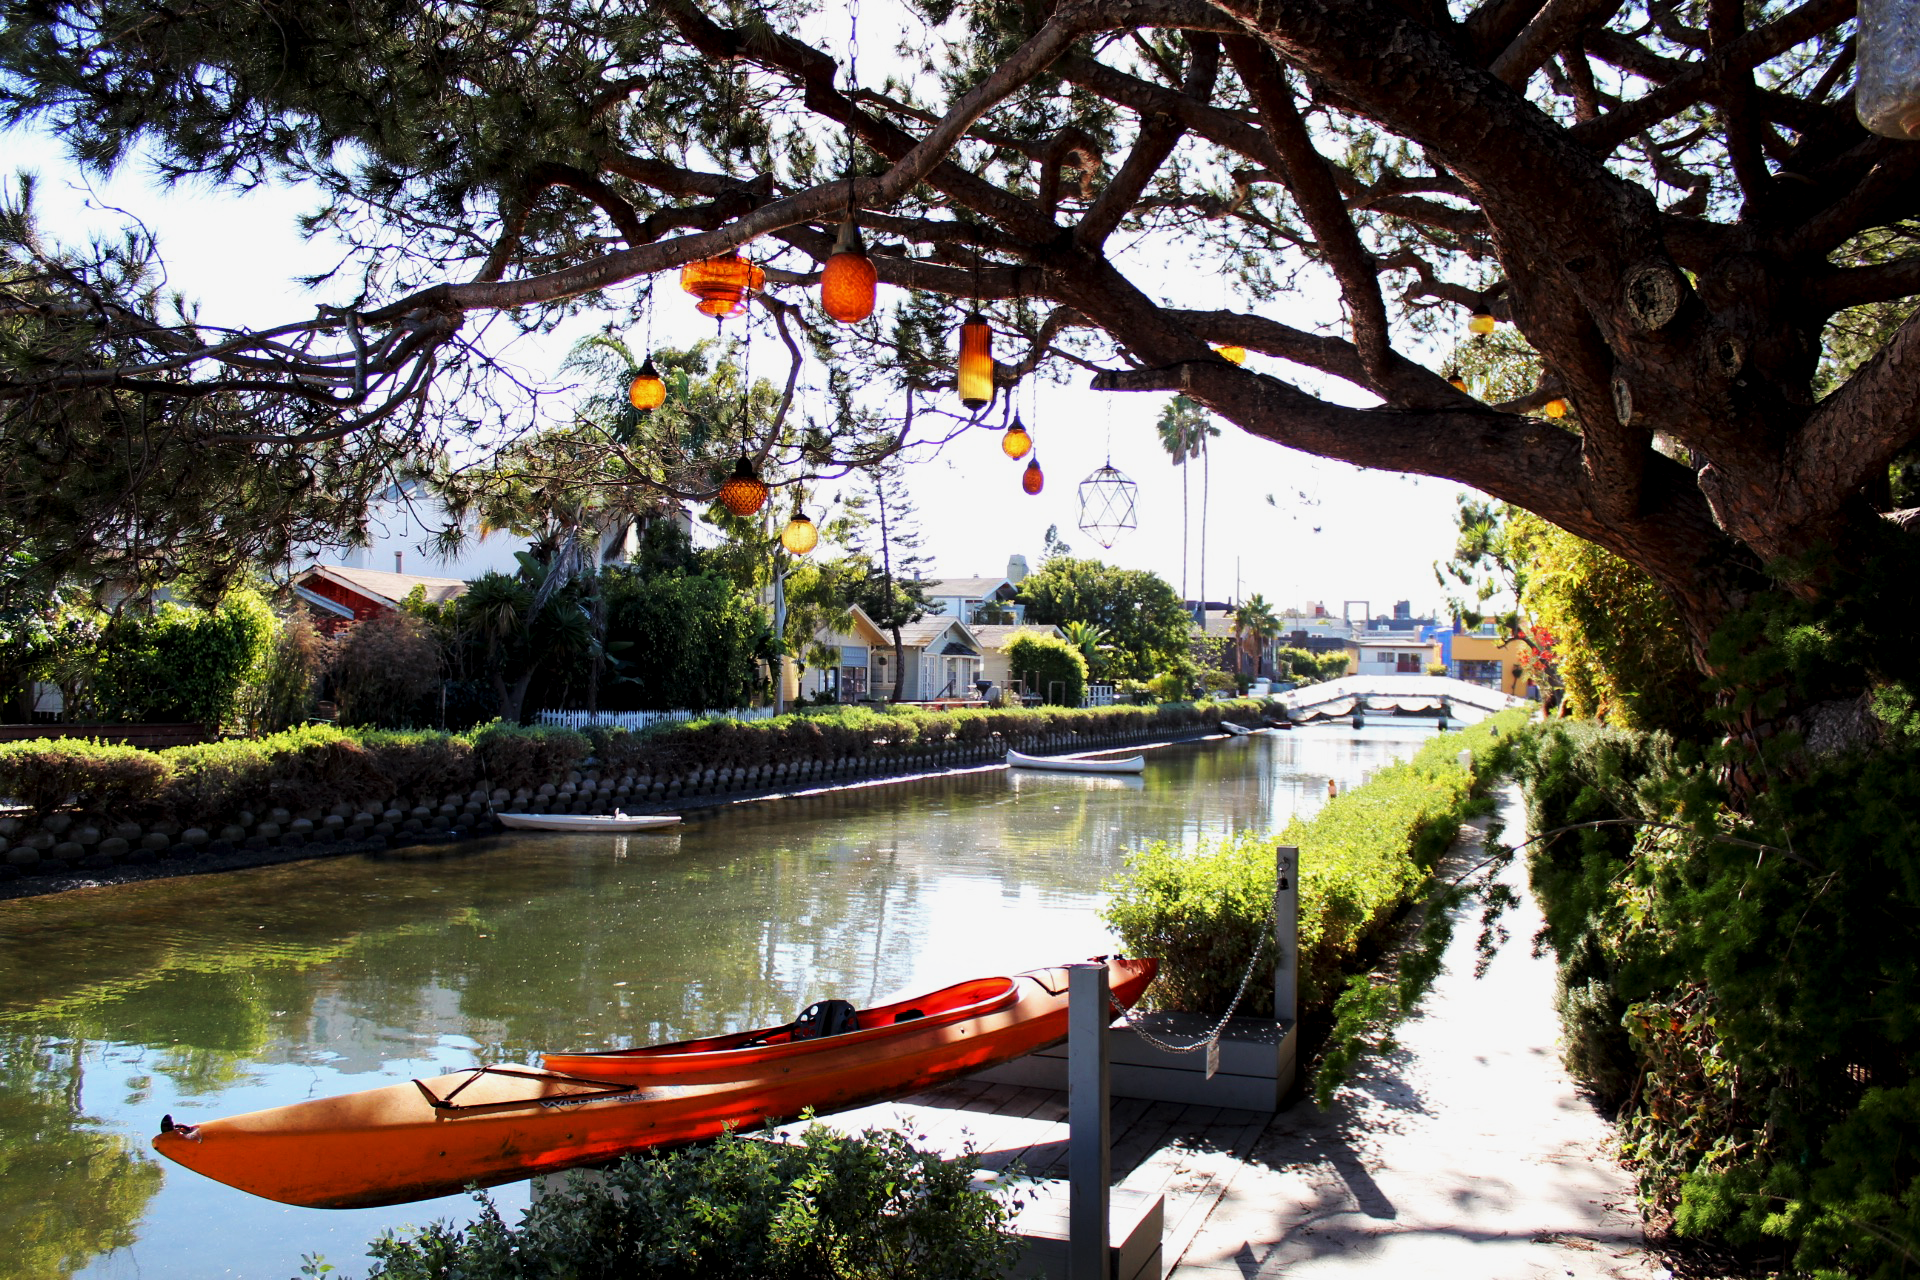 Have you ever been to the venice canals? I have heard that some people will even give you rides on their canoe or kayak or whatever that is. Sadly I wasn't offered one.